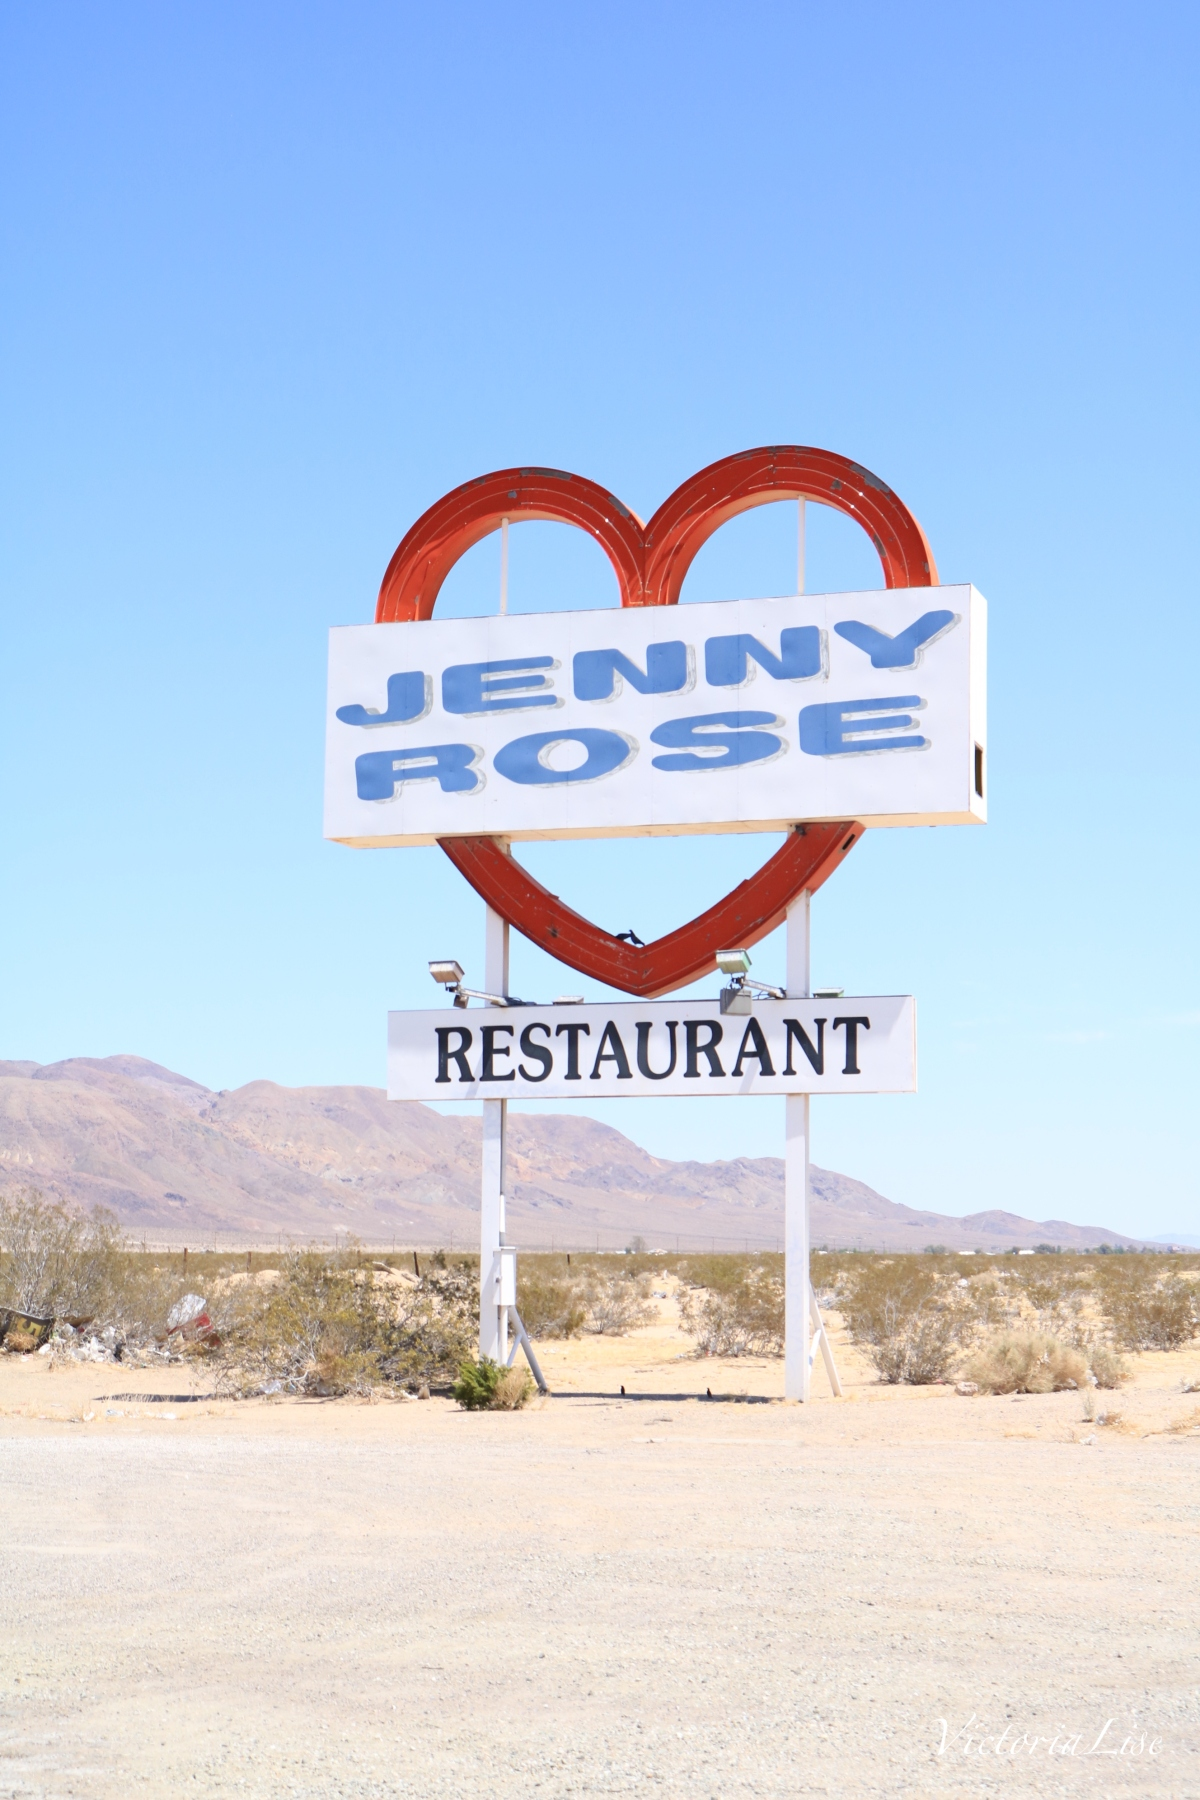 Jenny Rose Restaurant Sign. ©Victoria Lise 2018